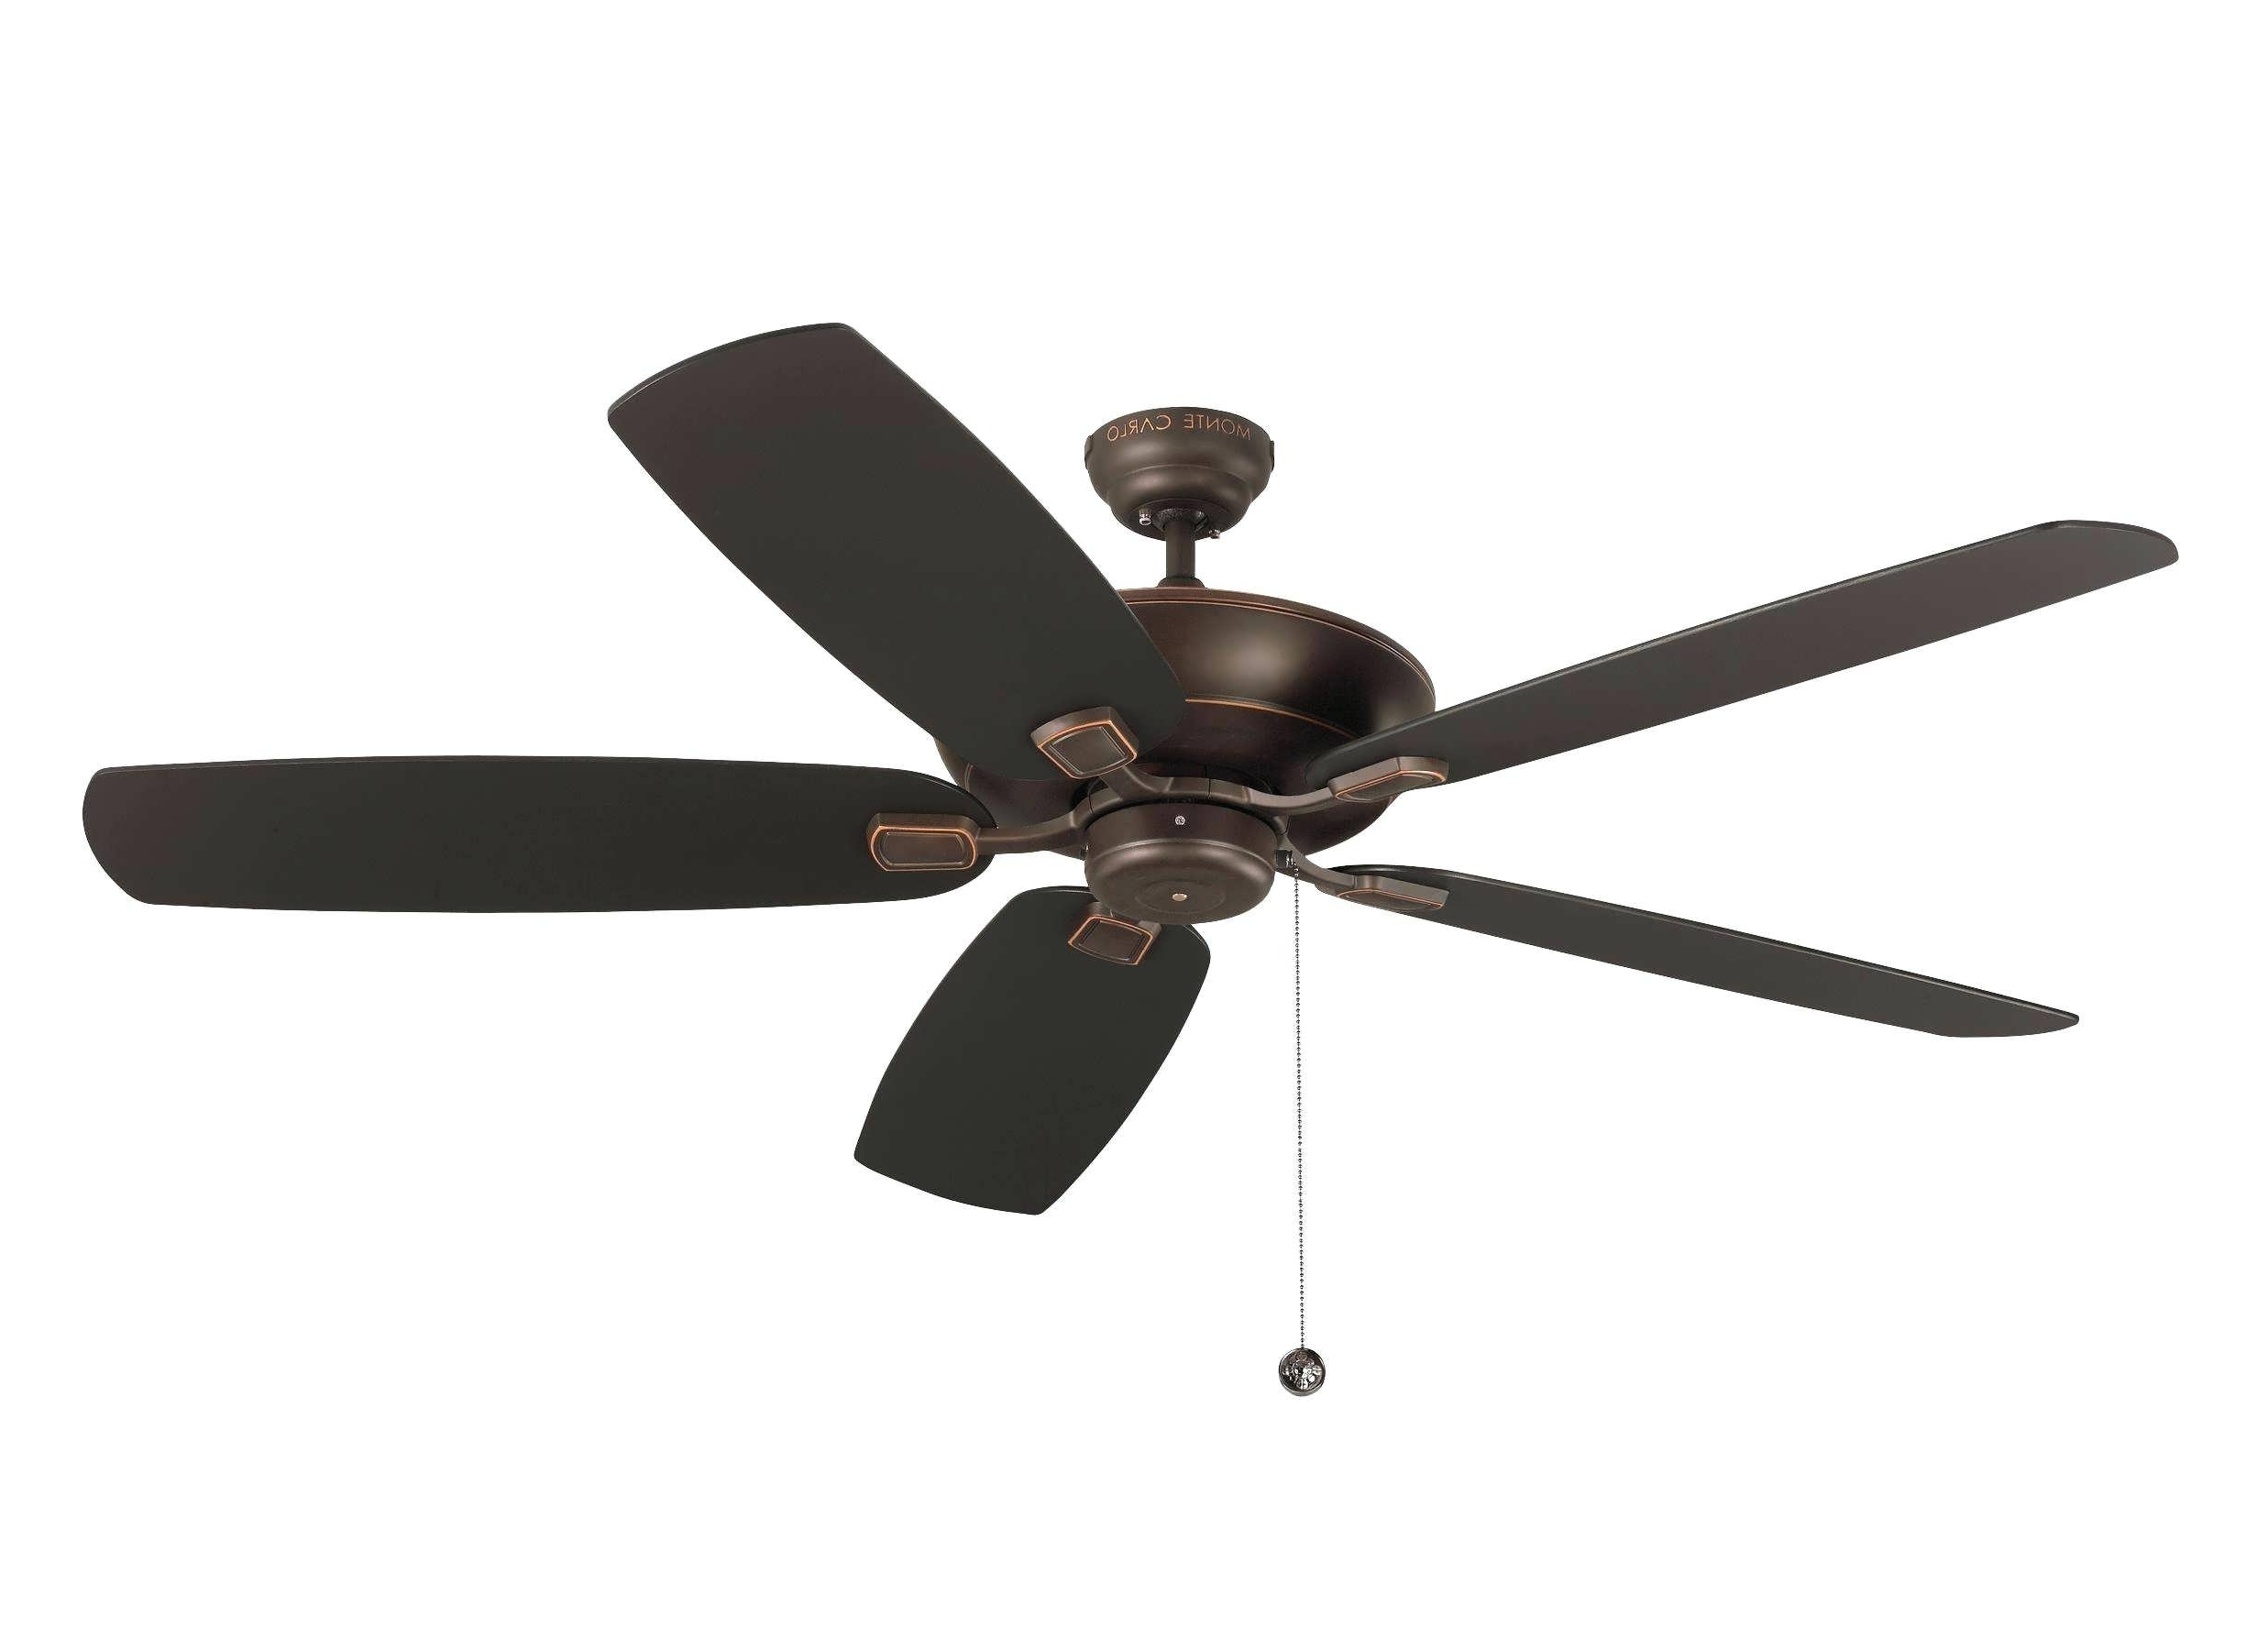 Bathgroundspath Within Black Outdoor Ceiling Fans With Light (View 13 of 20)